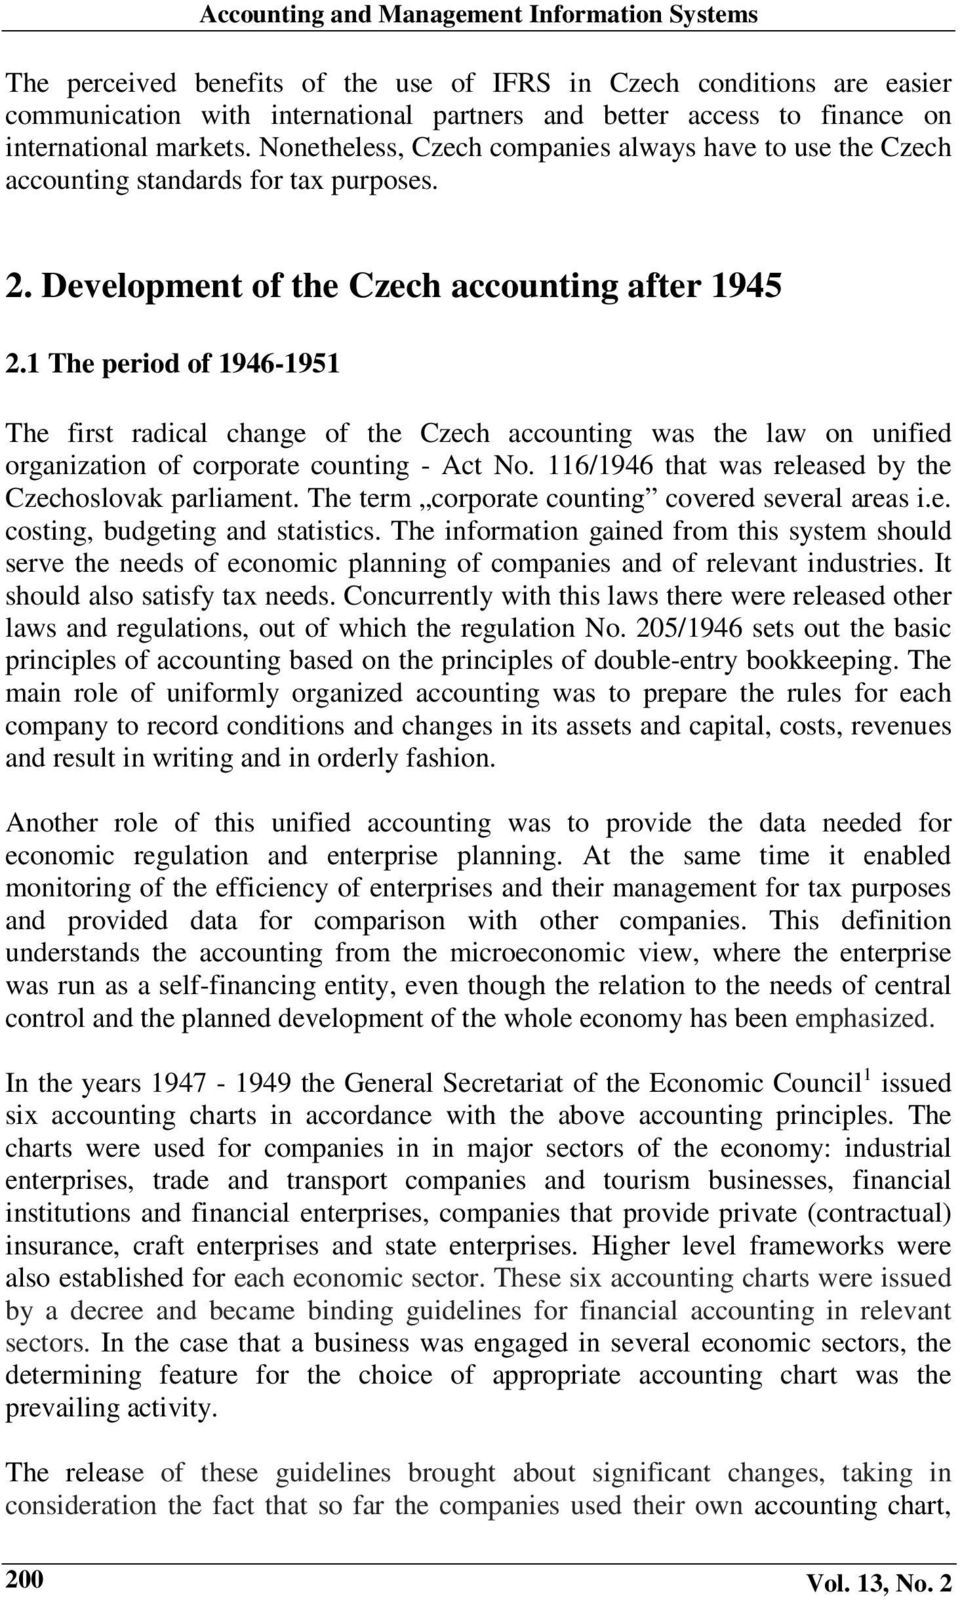 1 The period of 1946-1951 The first radical change of the Czech accounting was the law on unified organization of corporate counting - Act No.